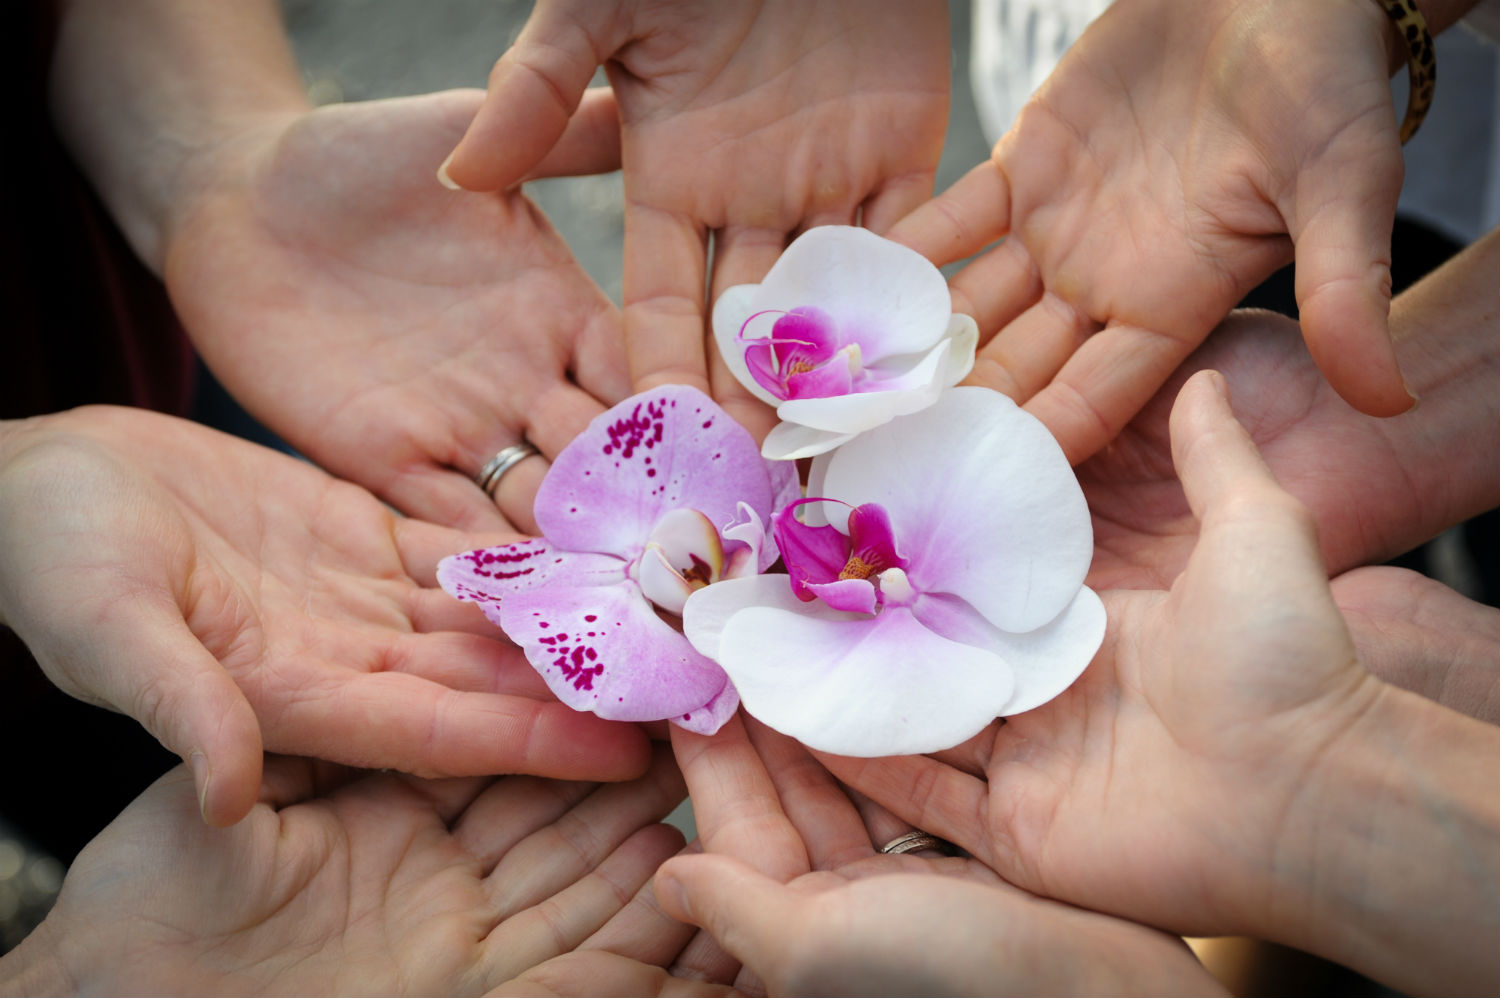 Moonstone Midwives hands in a circle holding white and pink orchid flowers.